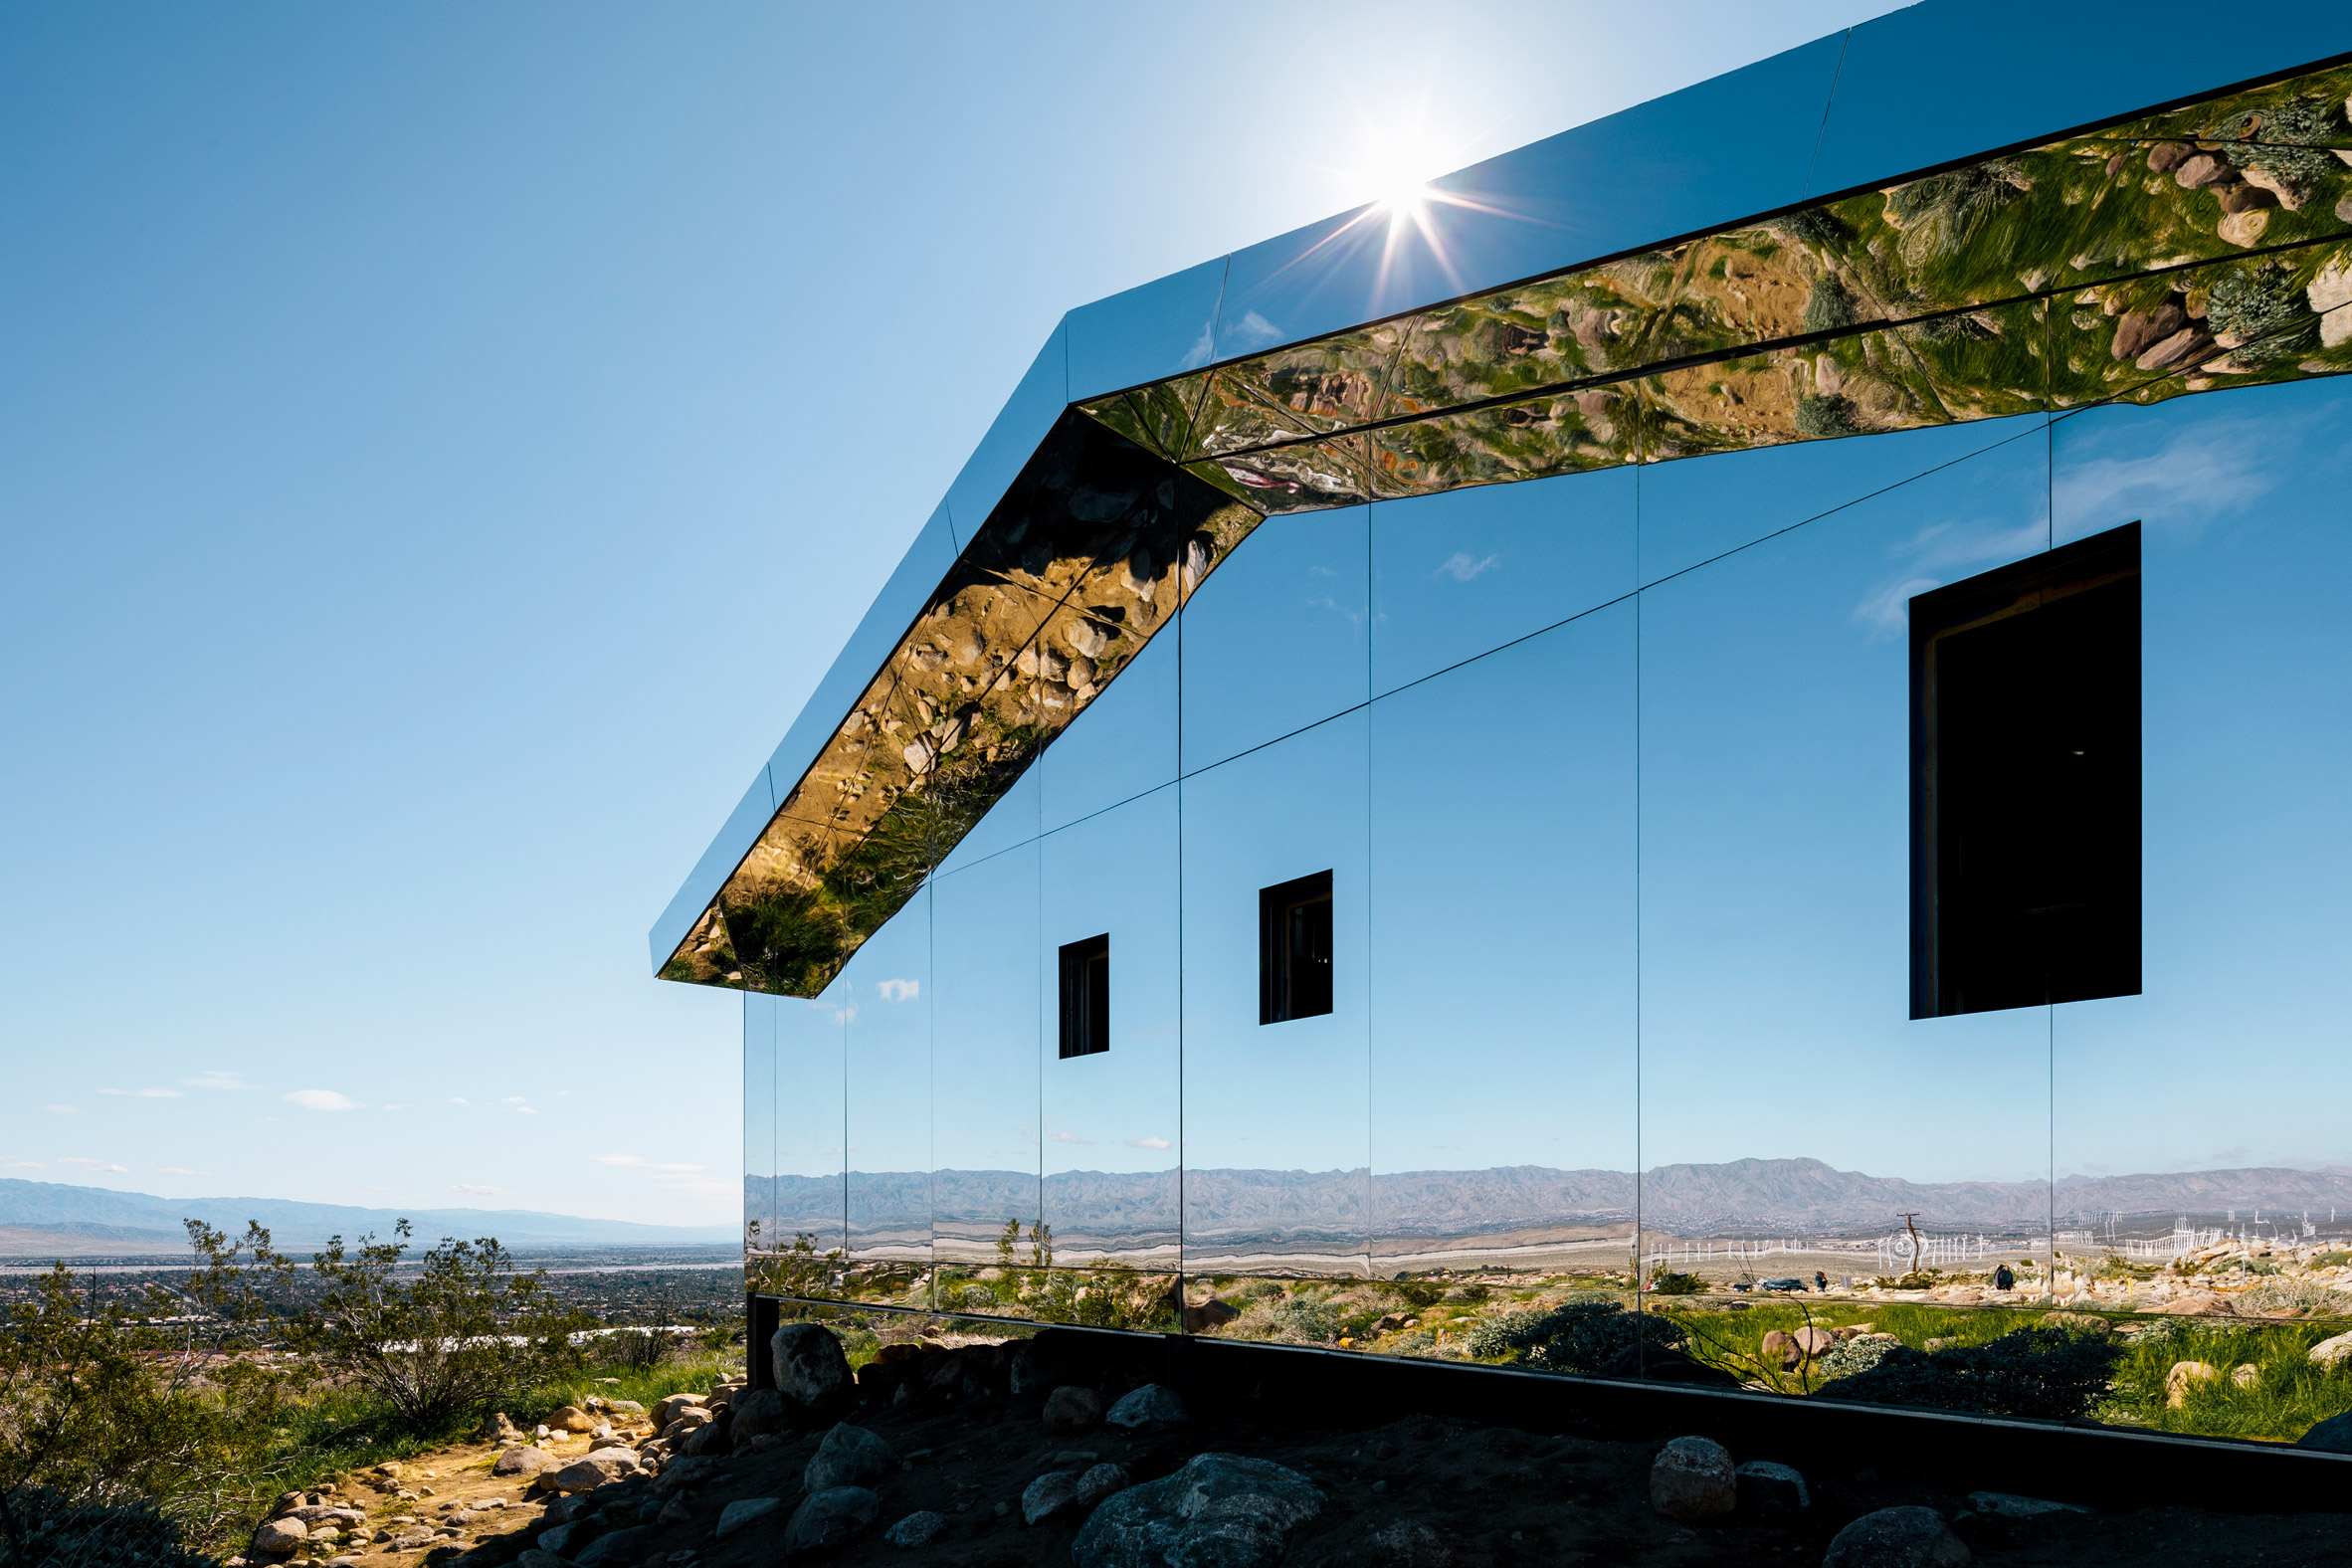 Doug Aitken installs entirely mirrored cabin in the Southern Californian desert